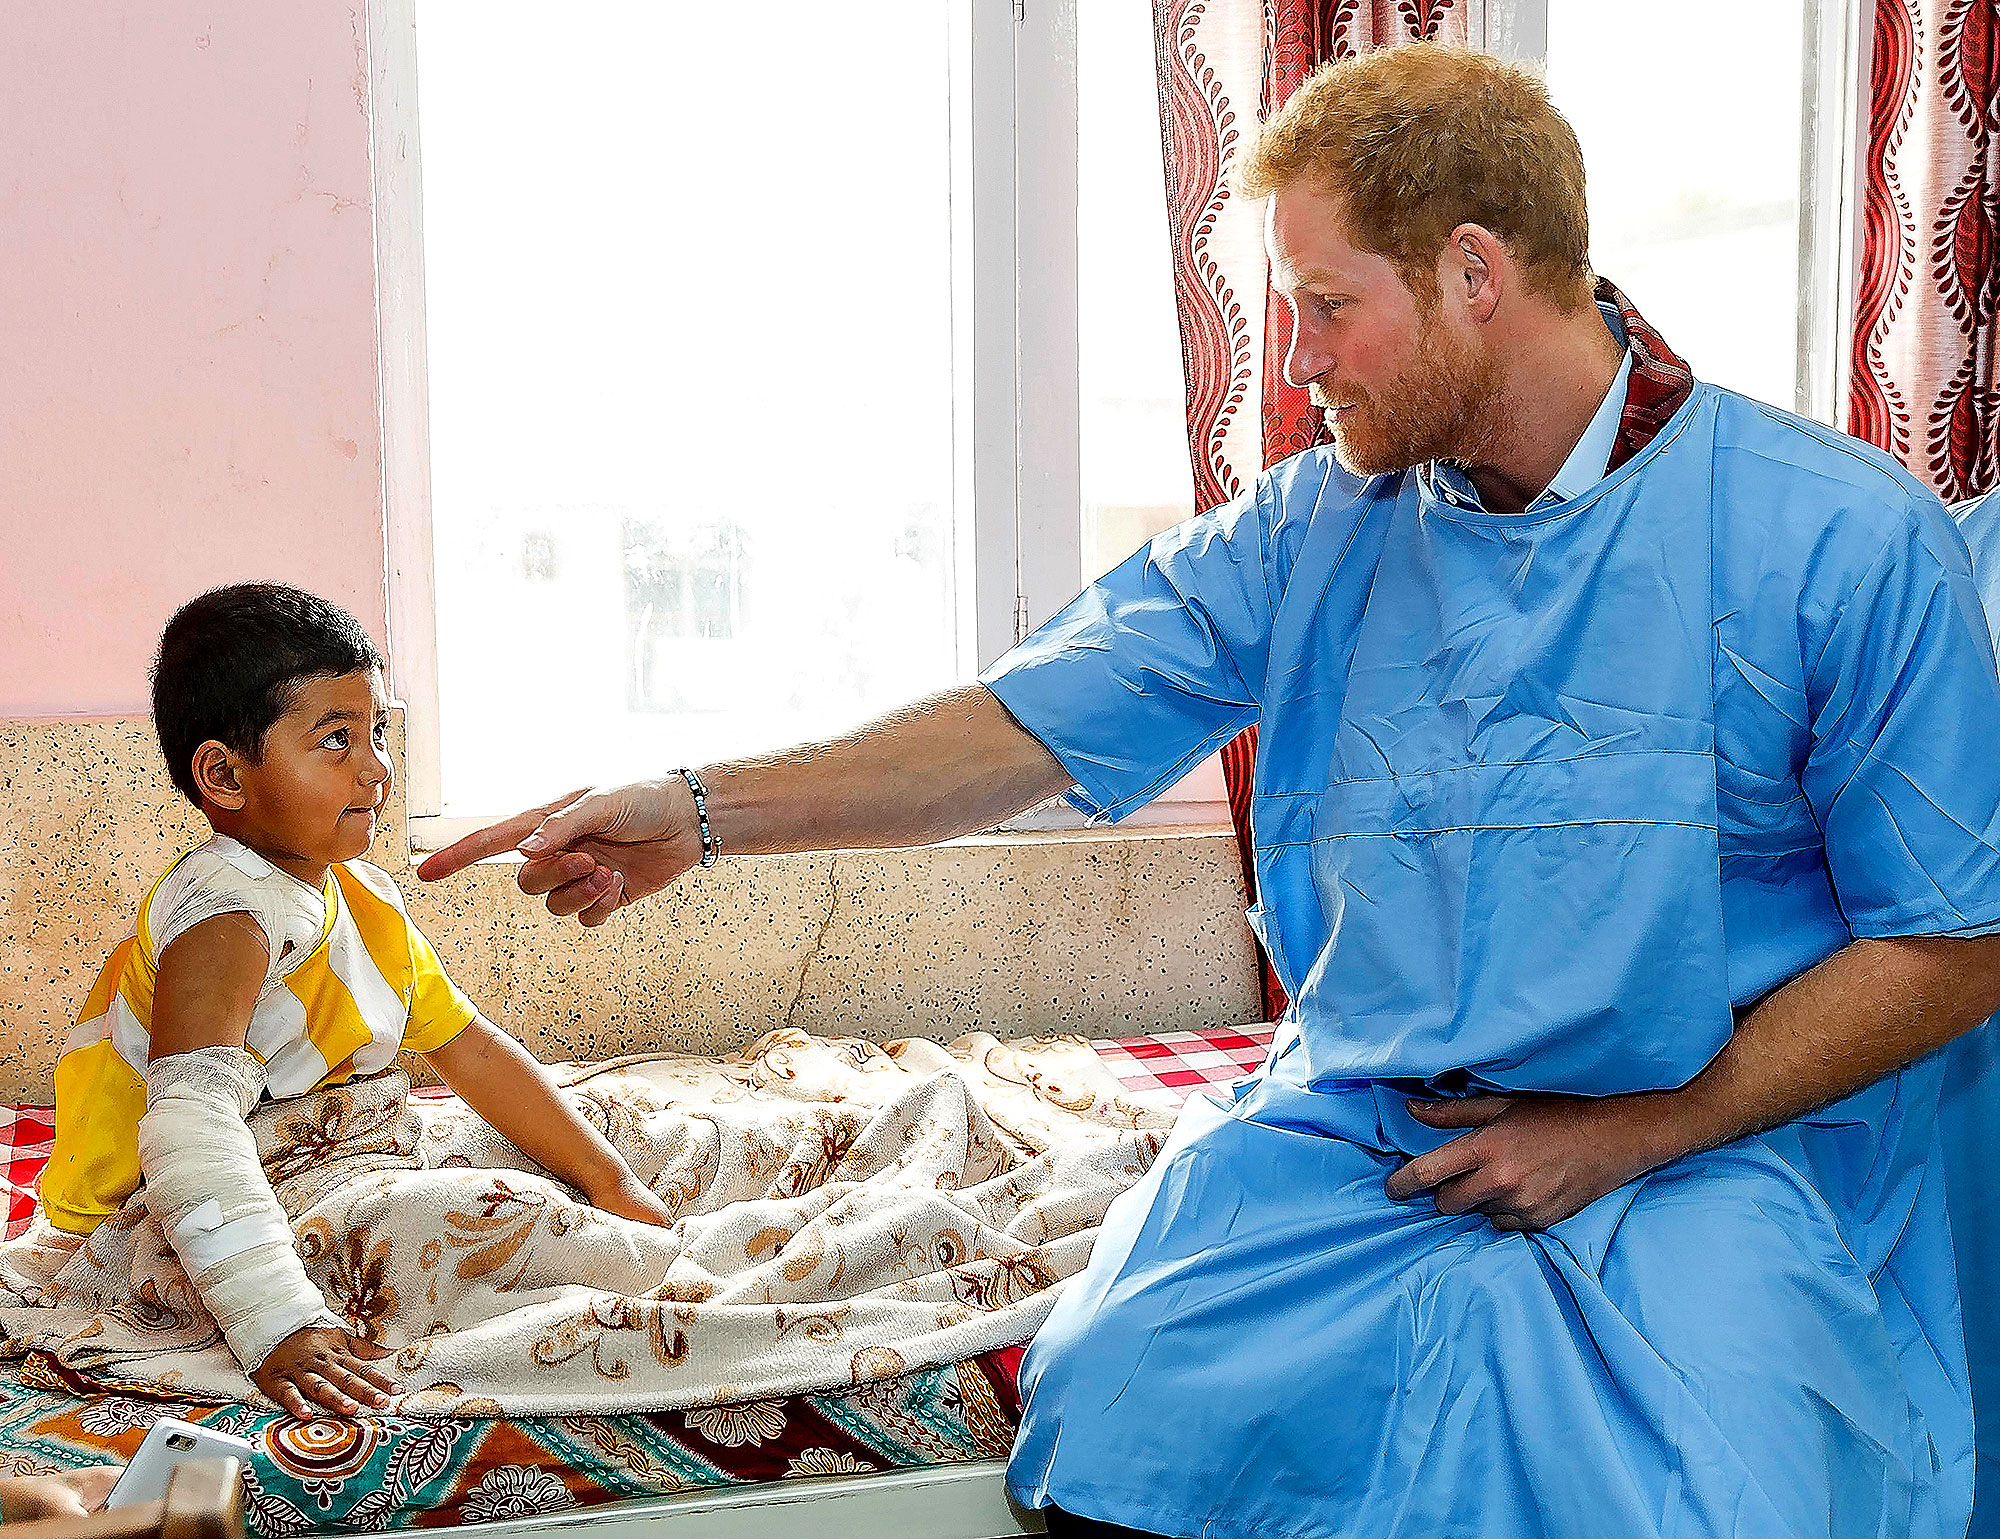 Prince Harry - In March 2016, Prince Harry met with young burn victims in Nepal.